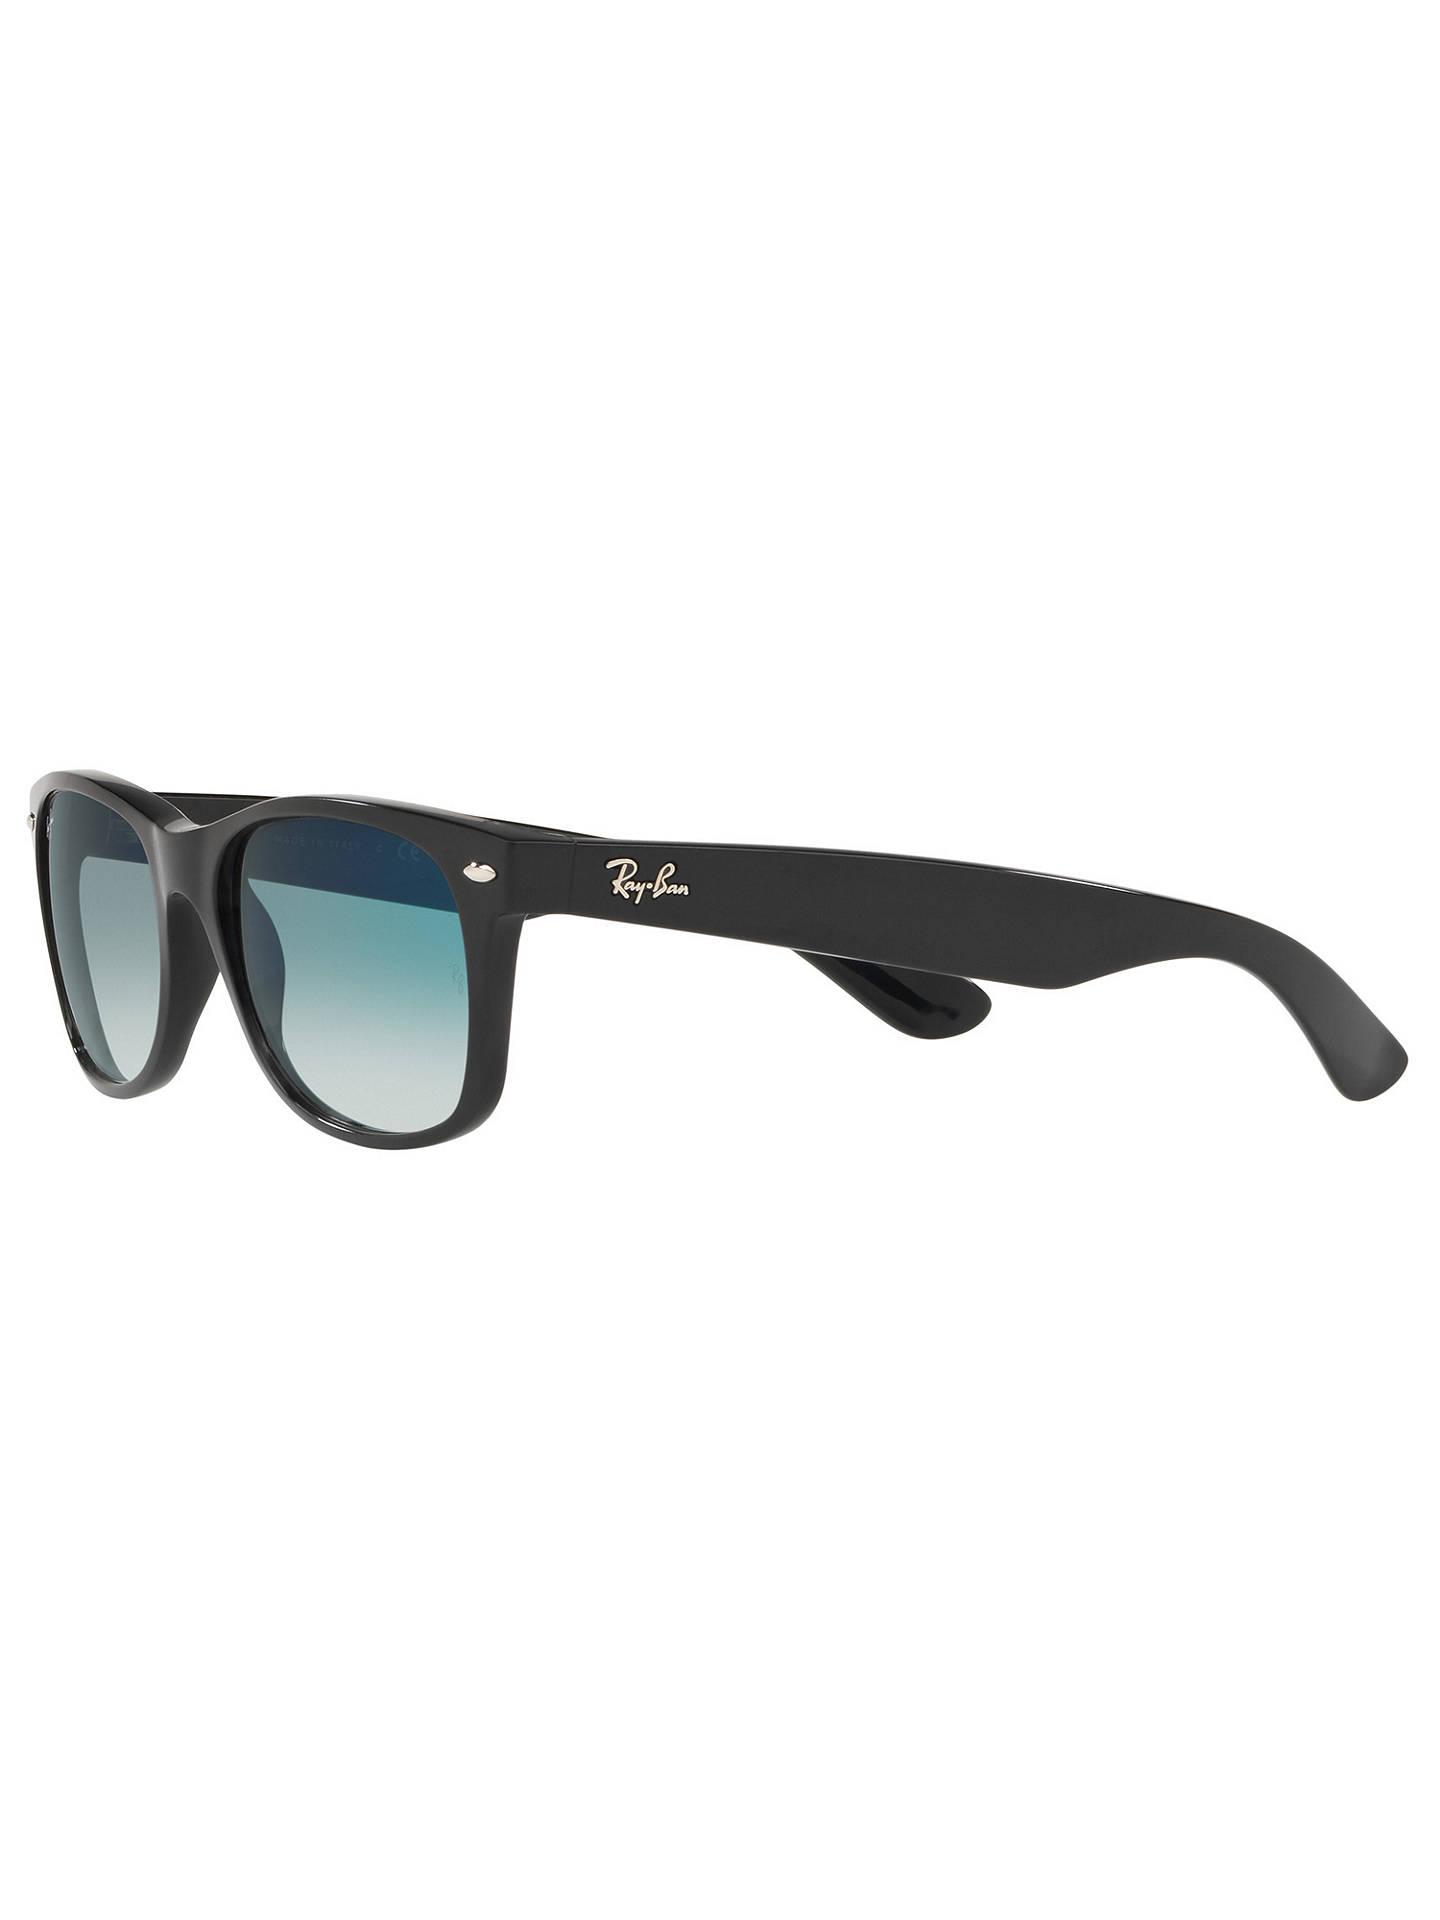 7978ea8381a1a Ray-Ban RB2132 Men s New Wayfarer Sunglasses at John Lewis   Partners